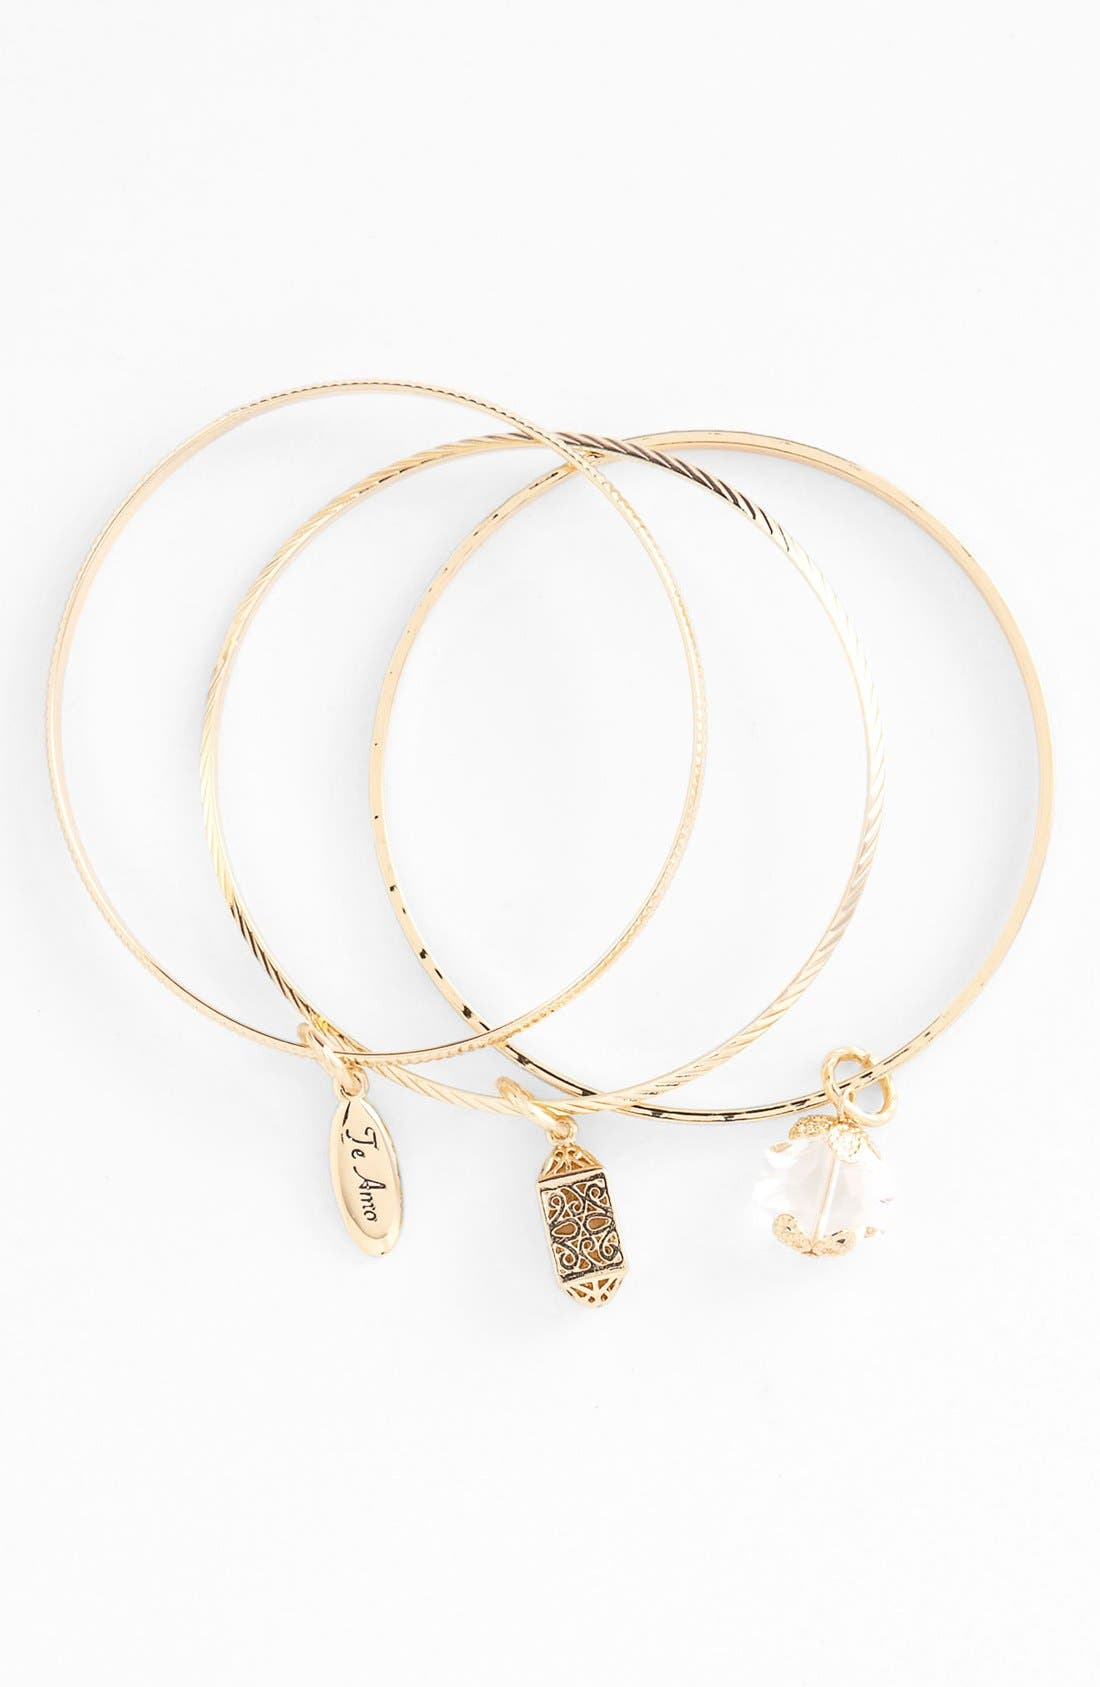 Alternate Image 1 Selected - Nordstrom 'Love Languages' Charm Bangles (Set of 3)